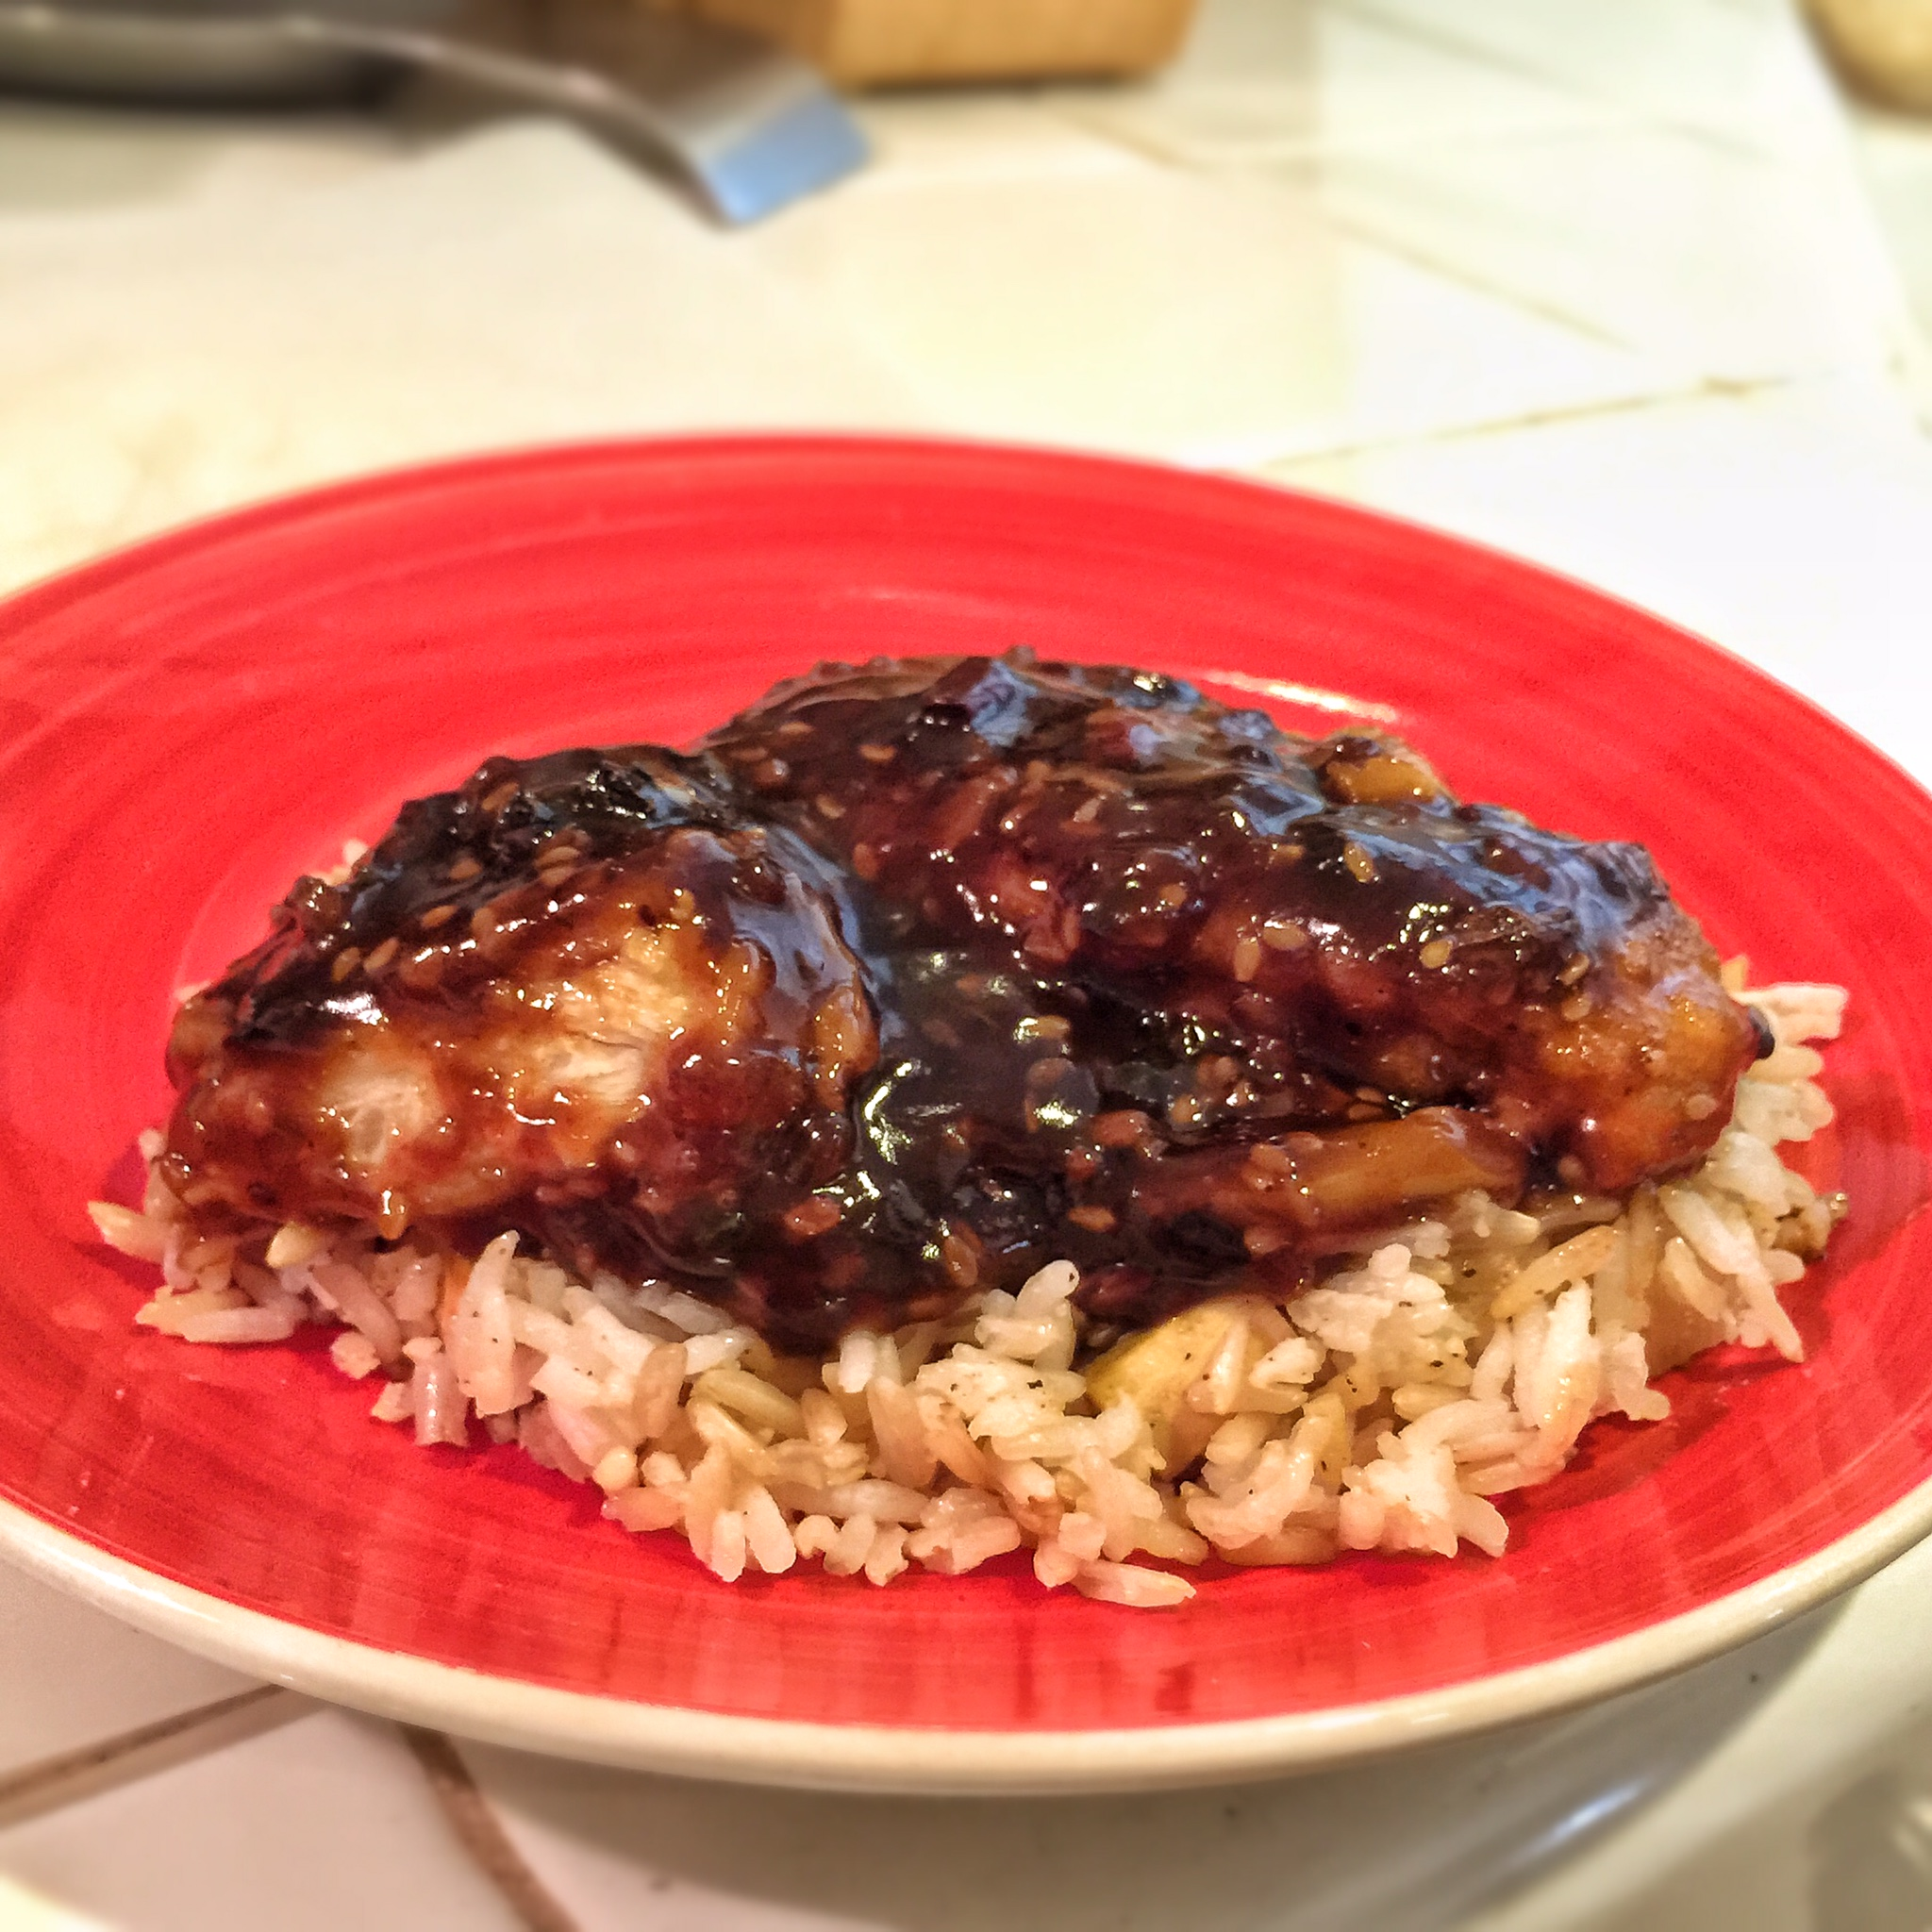 Fishless Filets with Black Bean Sauce over rice